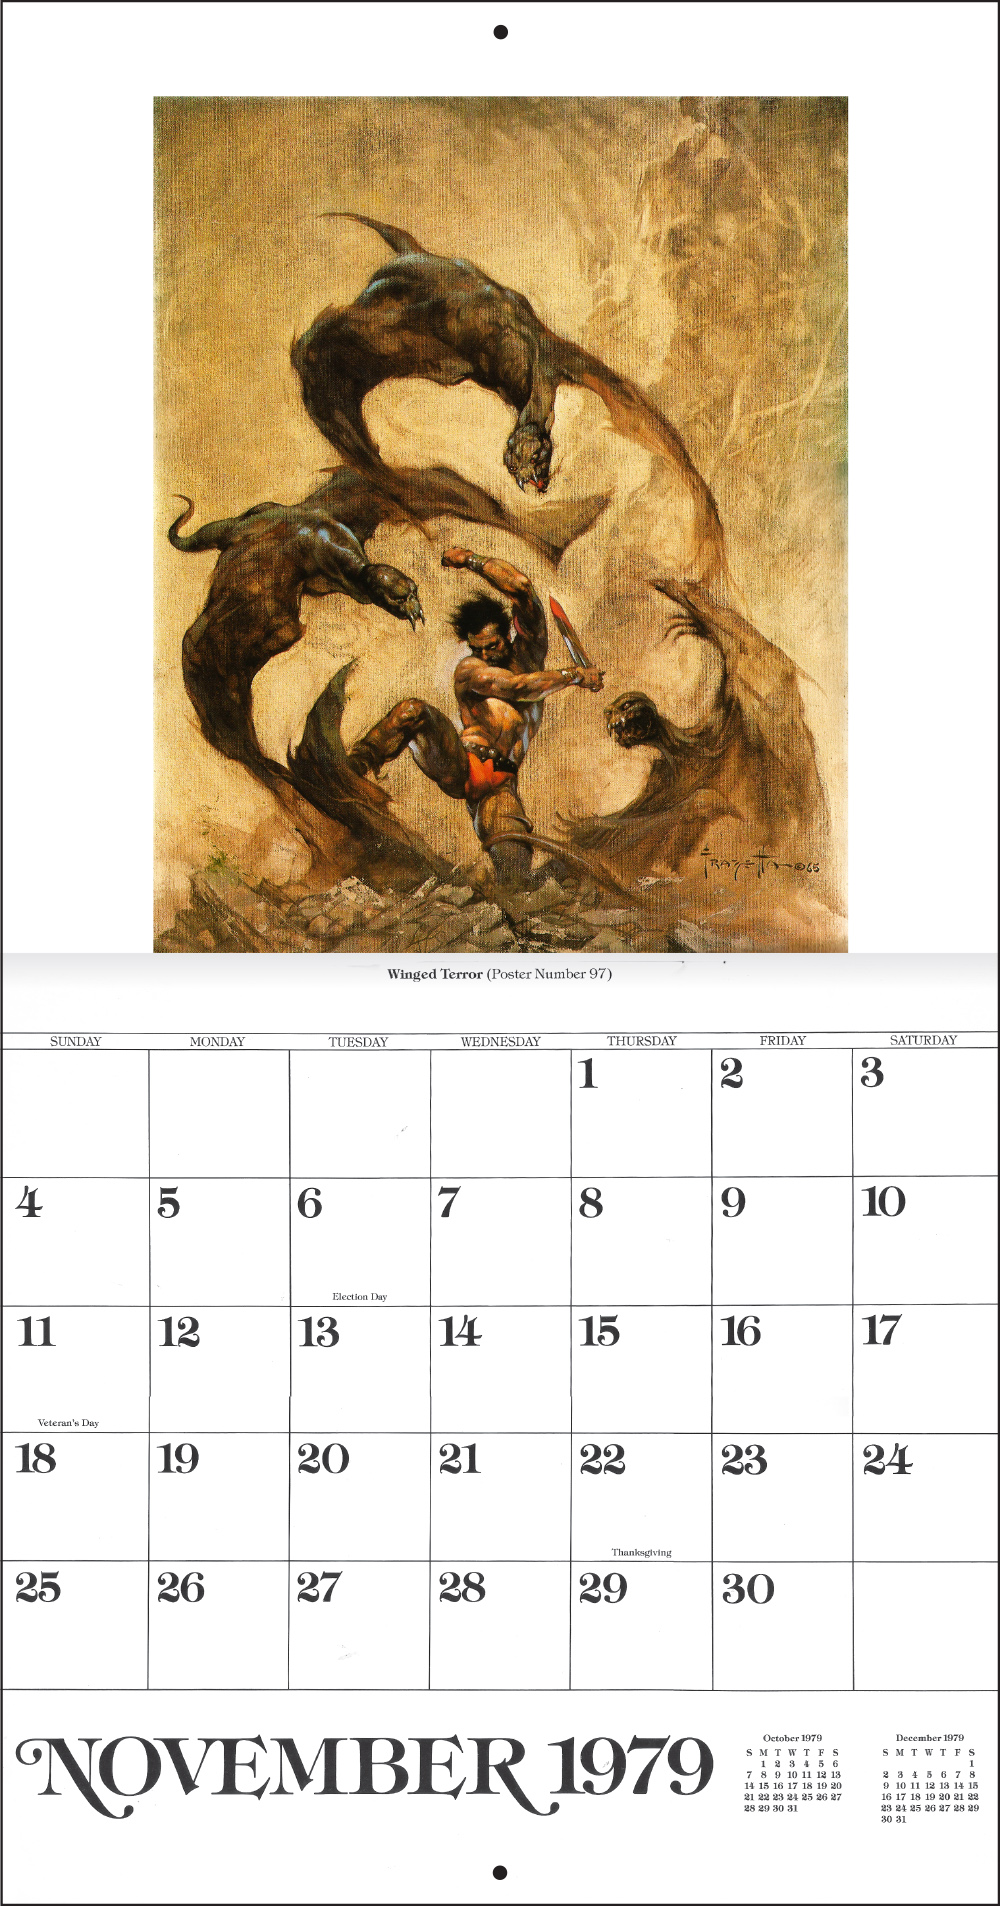 The Frank Frazetta Calendar 1979 Tain T The Meat It S The Humanity